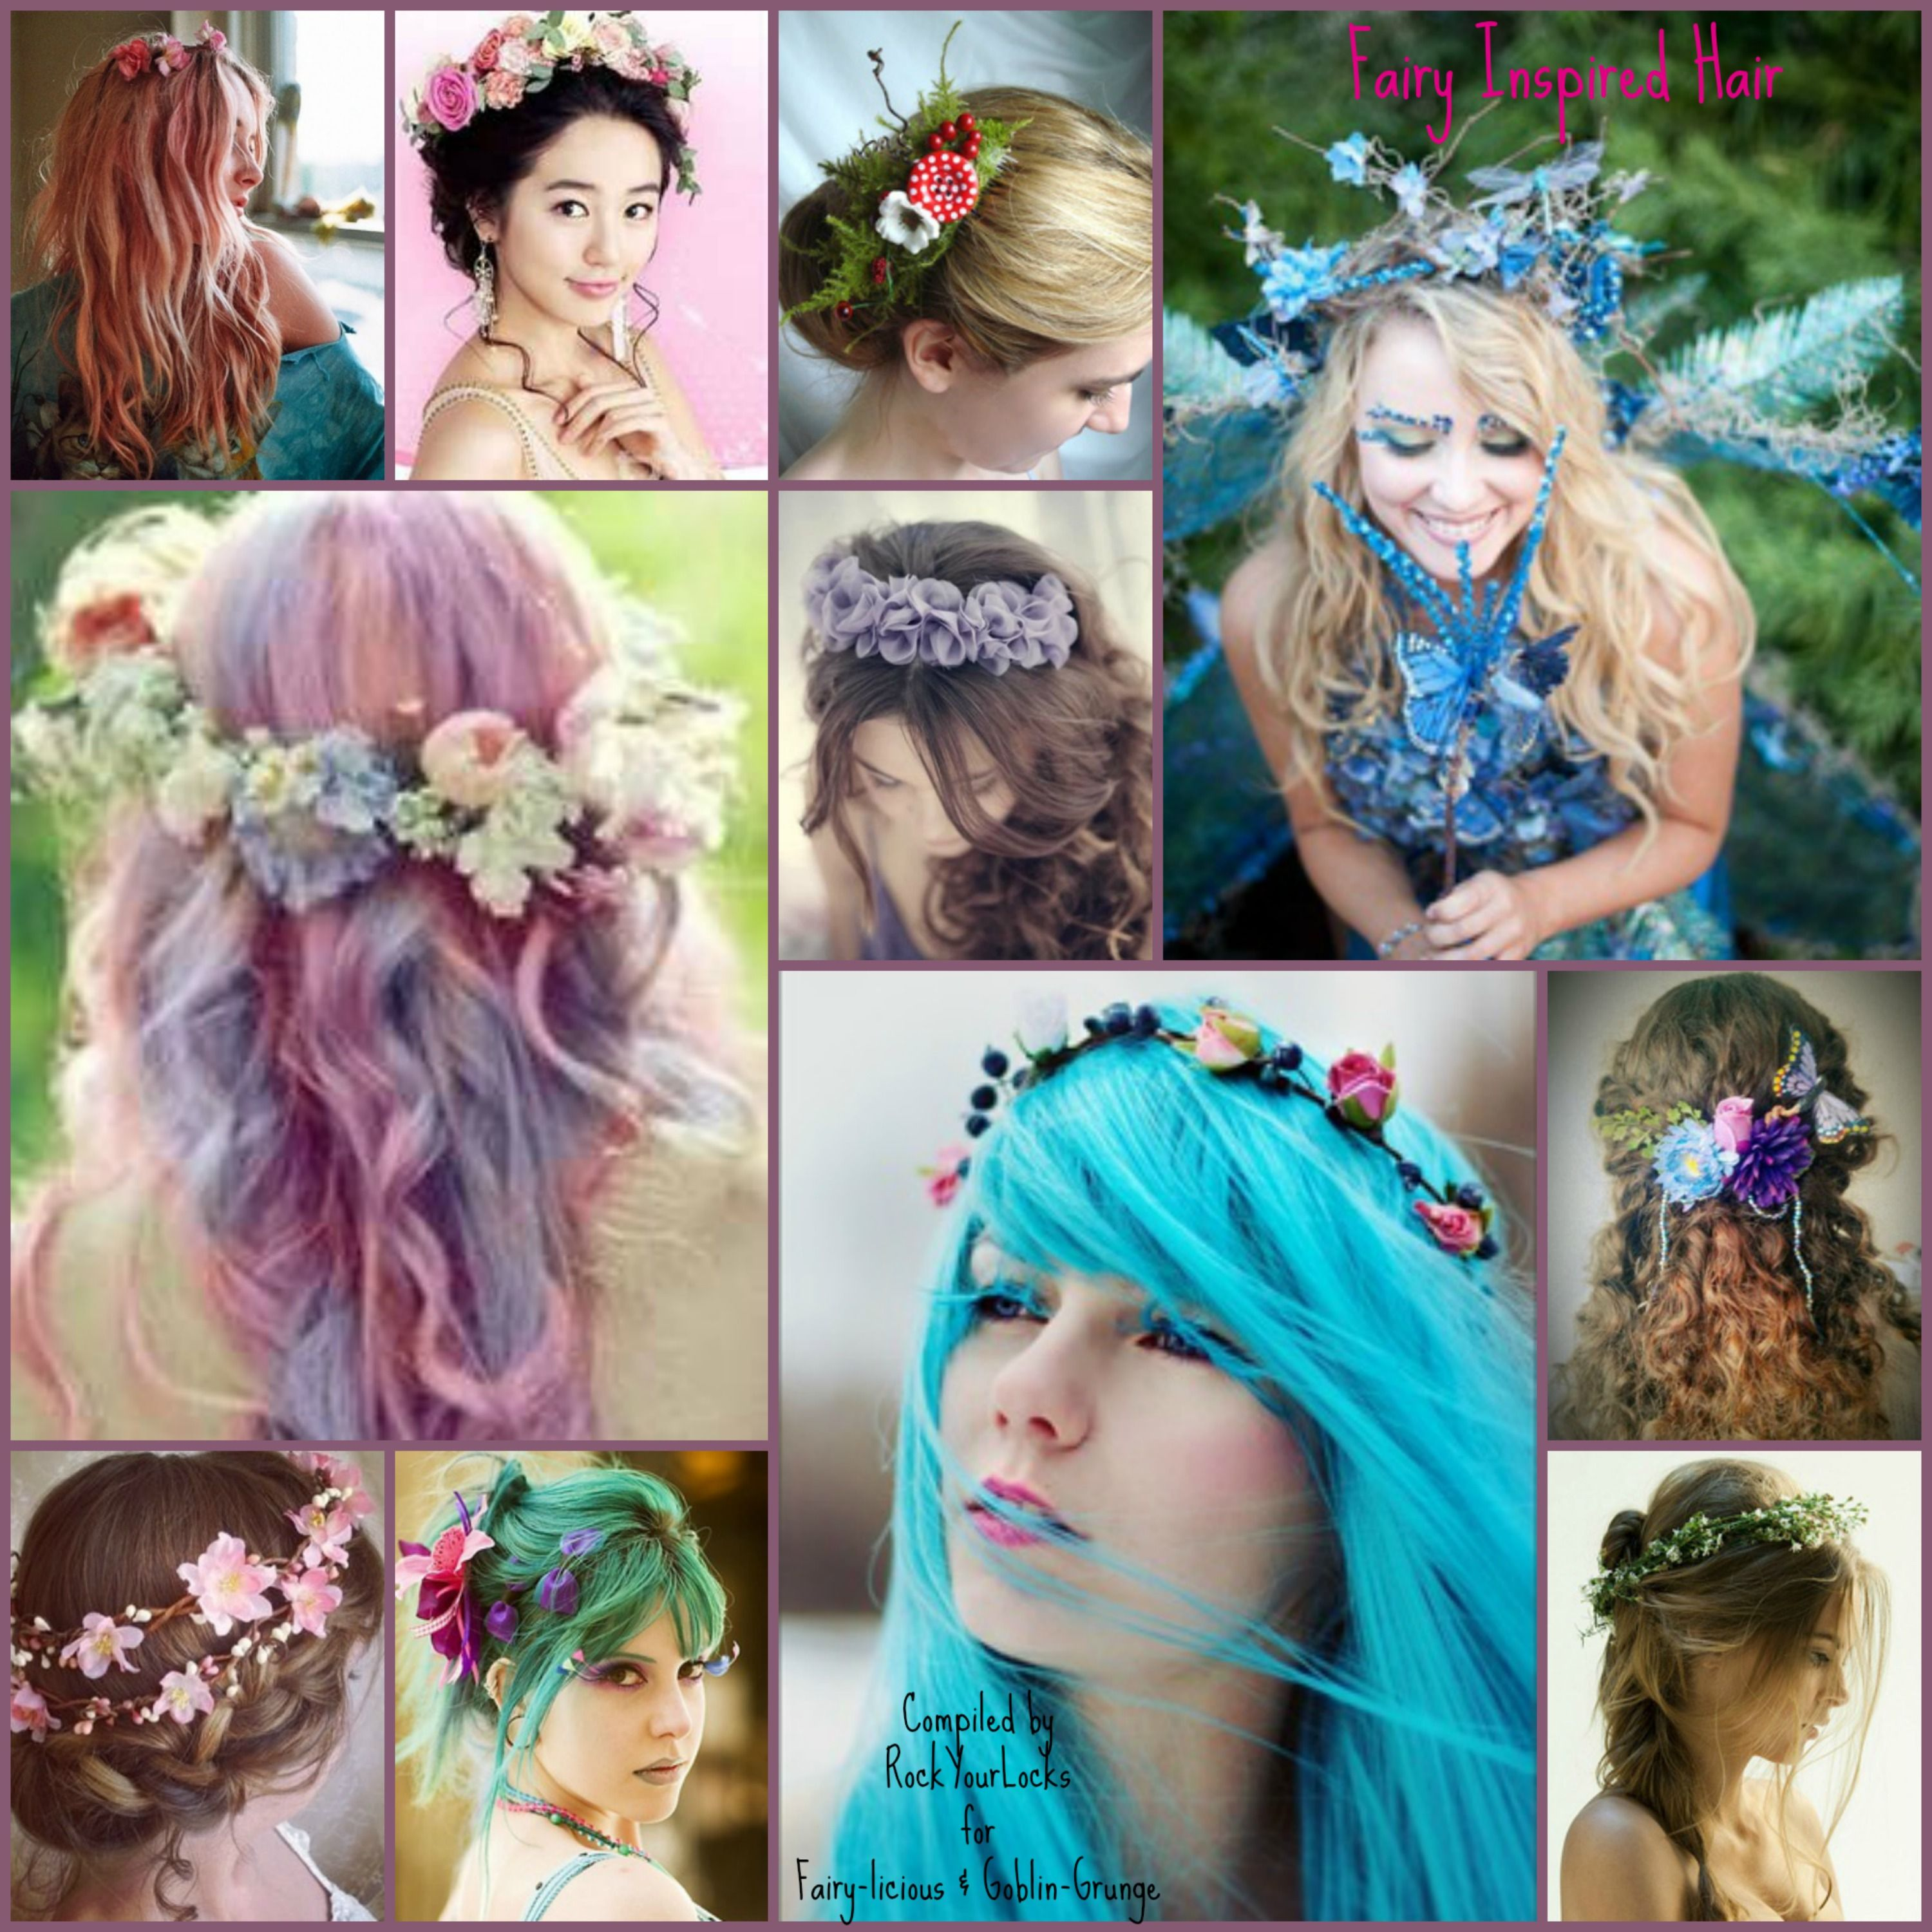 like the flower head bands. the colored hair is pretty too